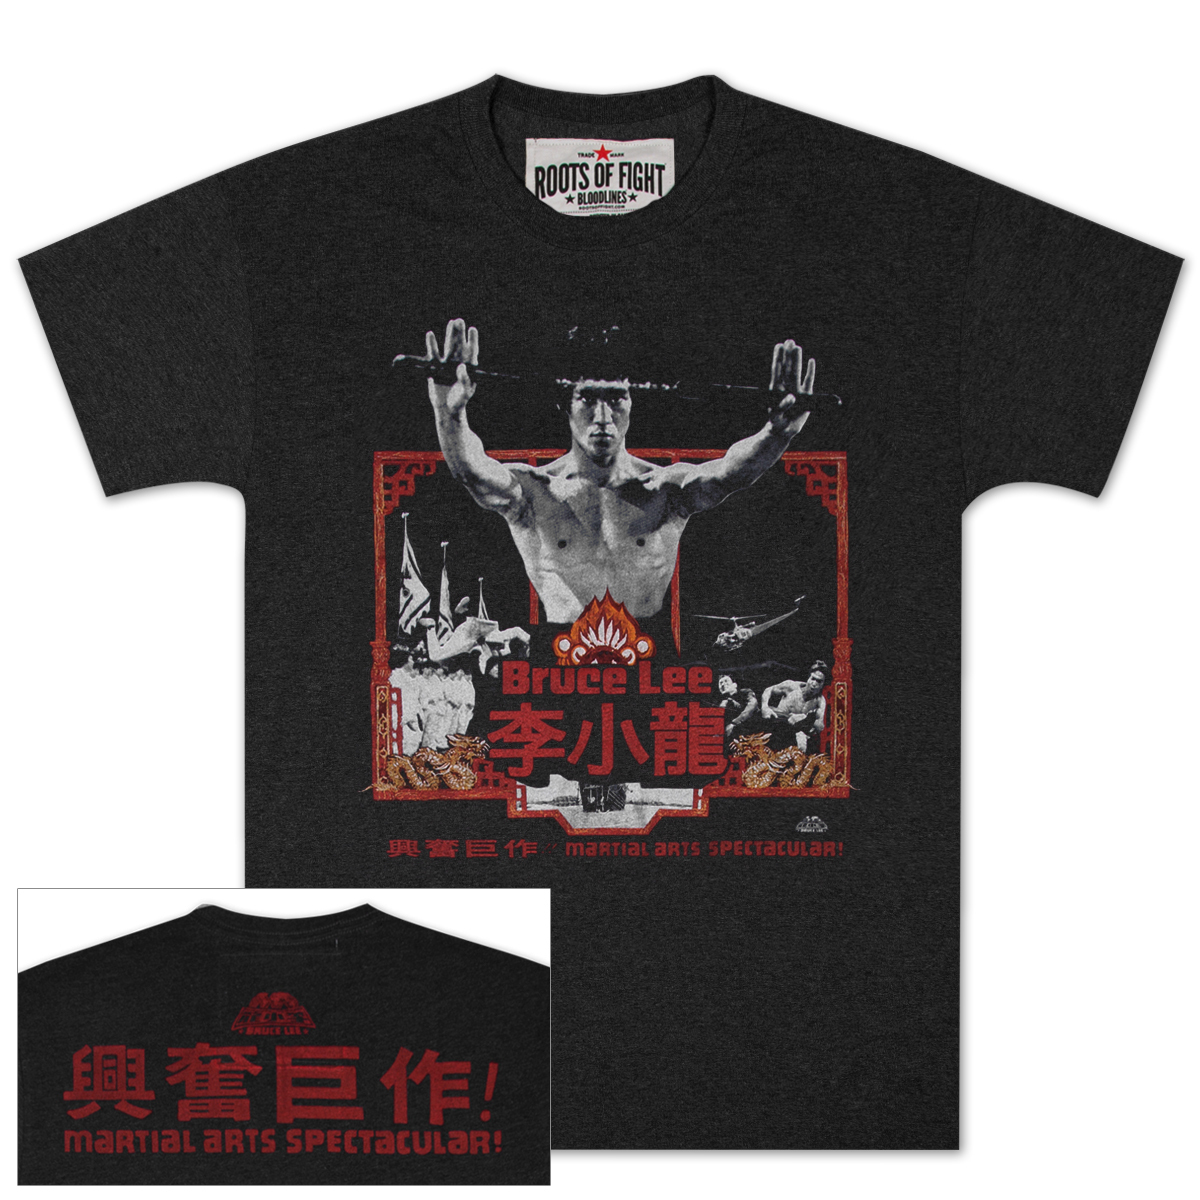 Bruce Lee Anniversary T-shirt - EXCLUSIVE